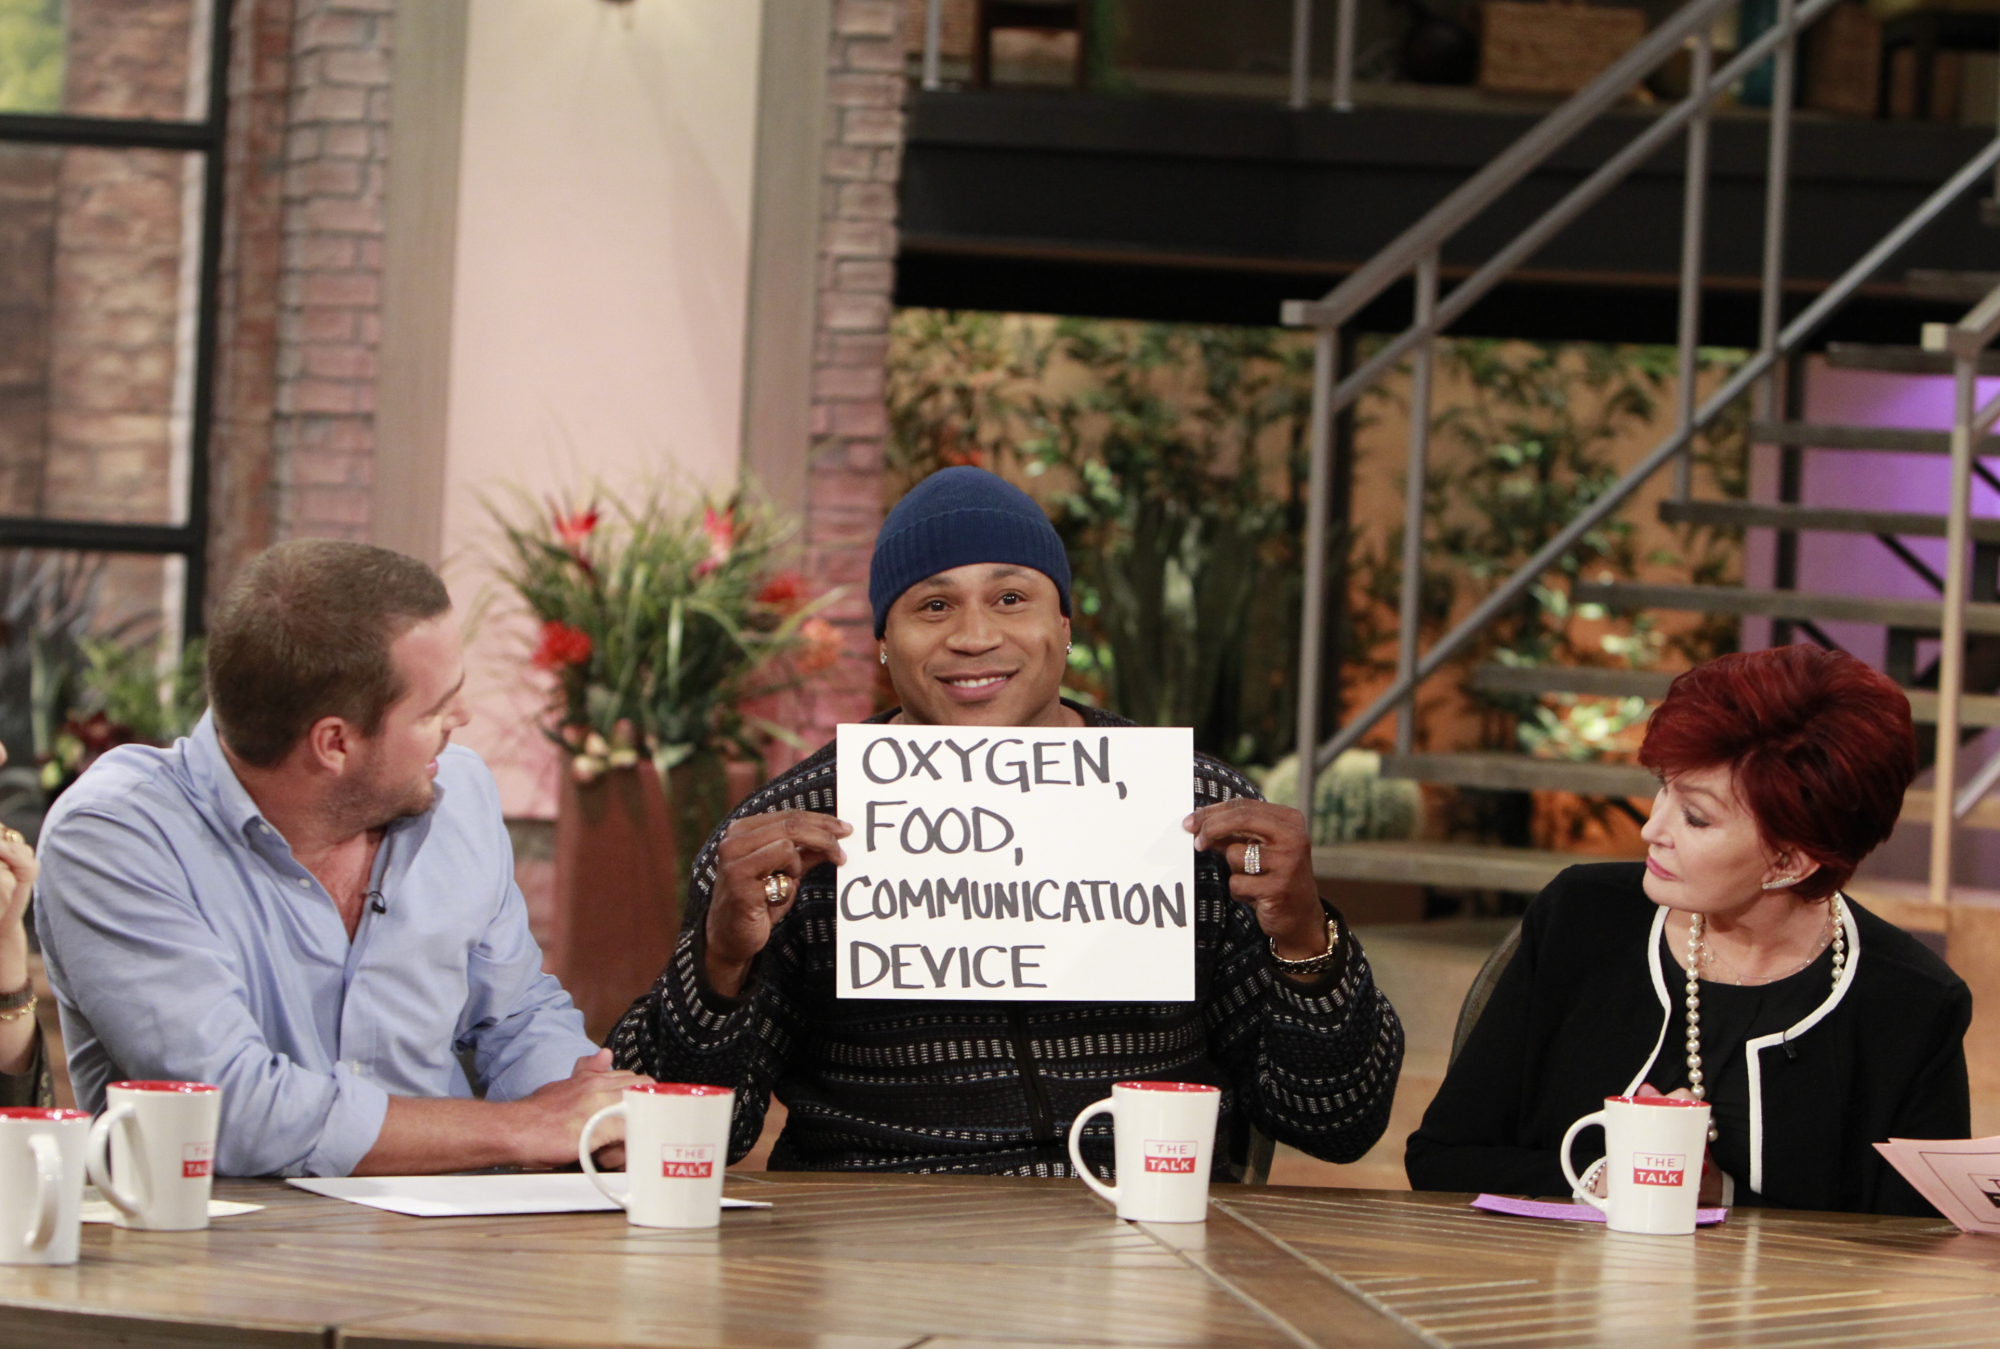 1. LL Cool J and Chris O'Donnell revealing fun facts about each other.